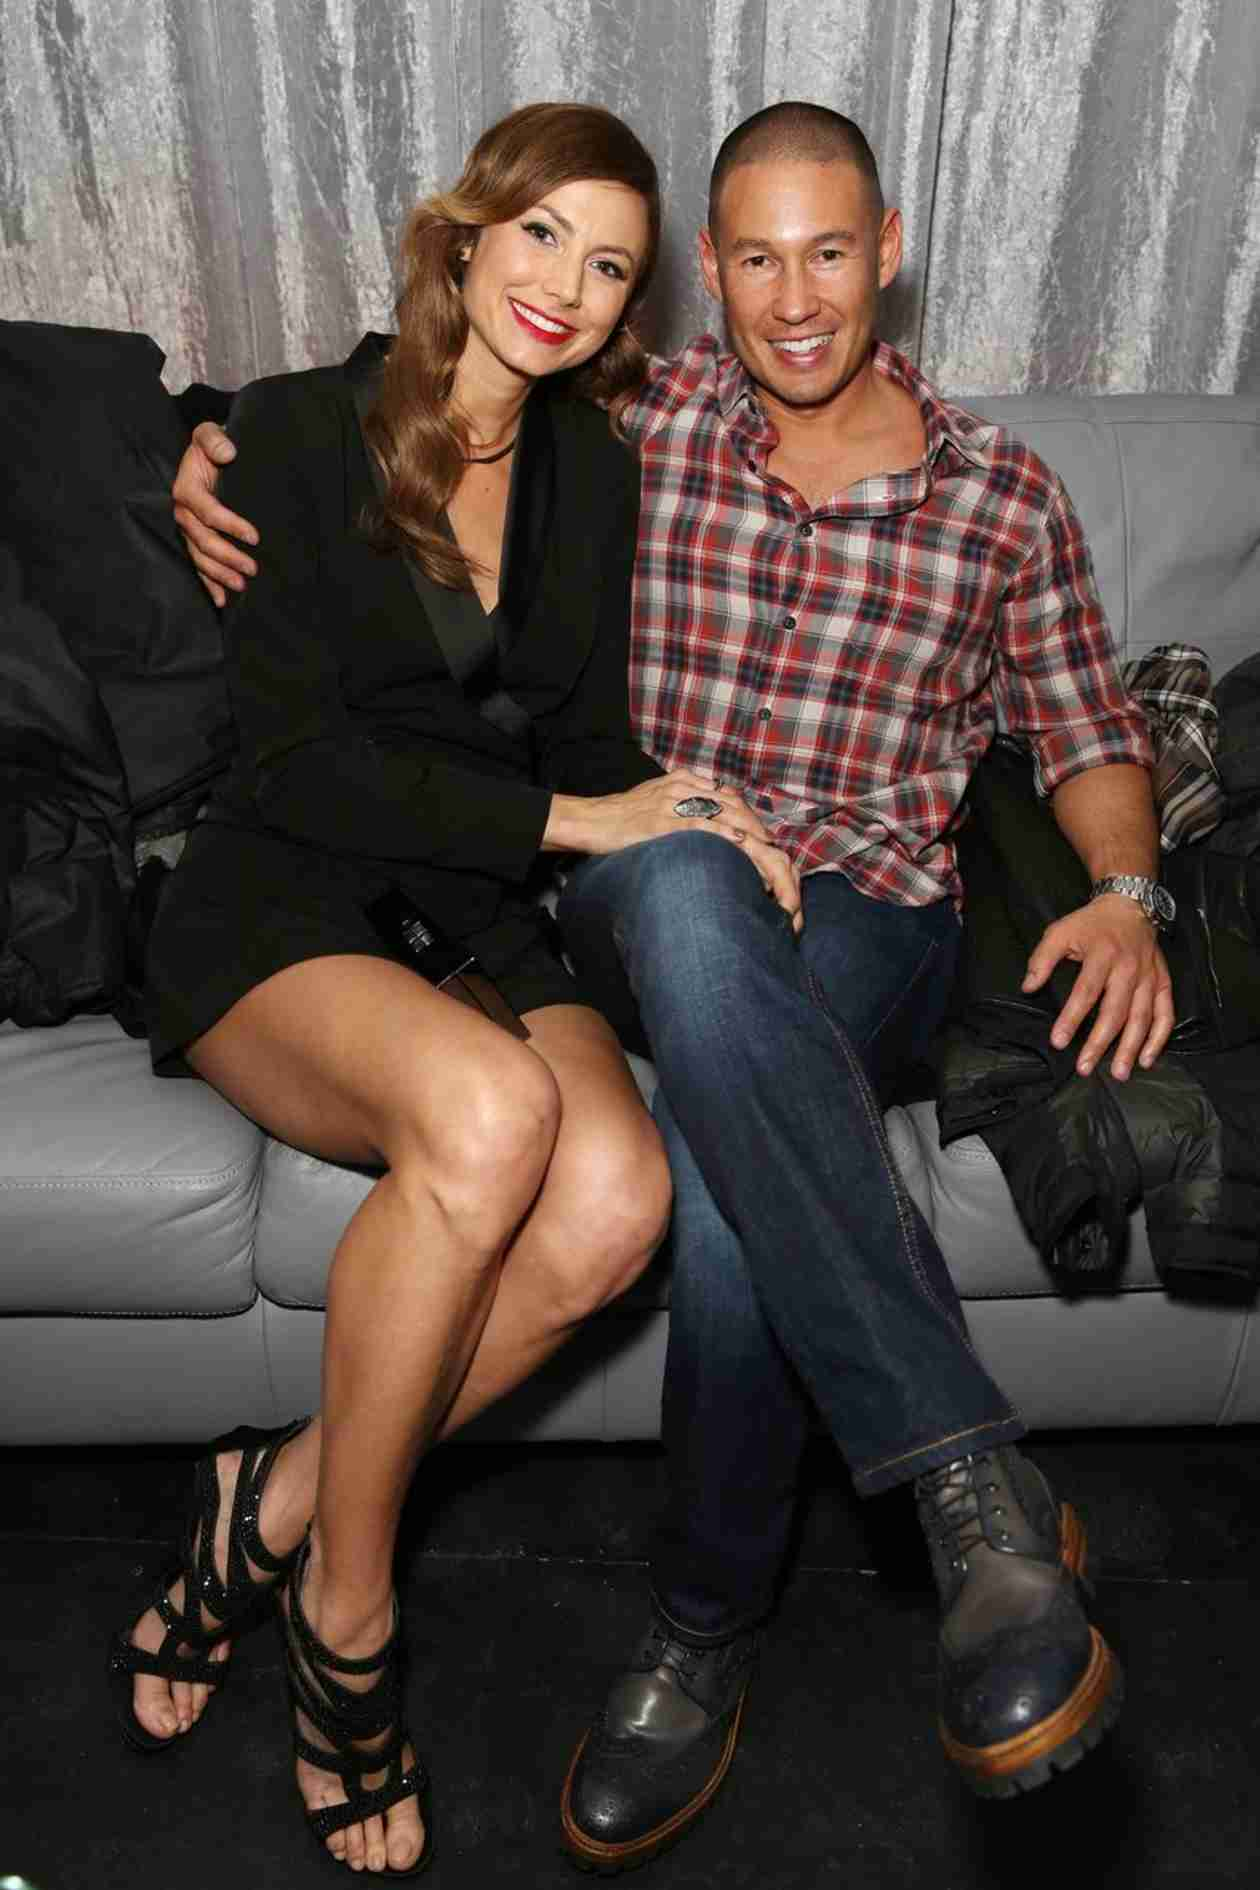 Pregnant Stacy Keibler Celebrates Her Baby Shower! (PHOTO)